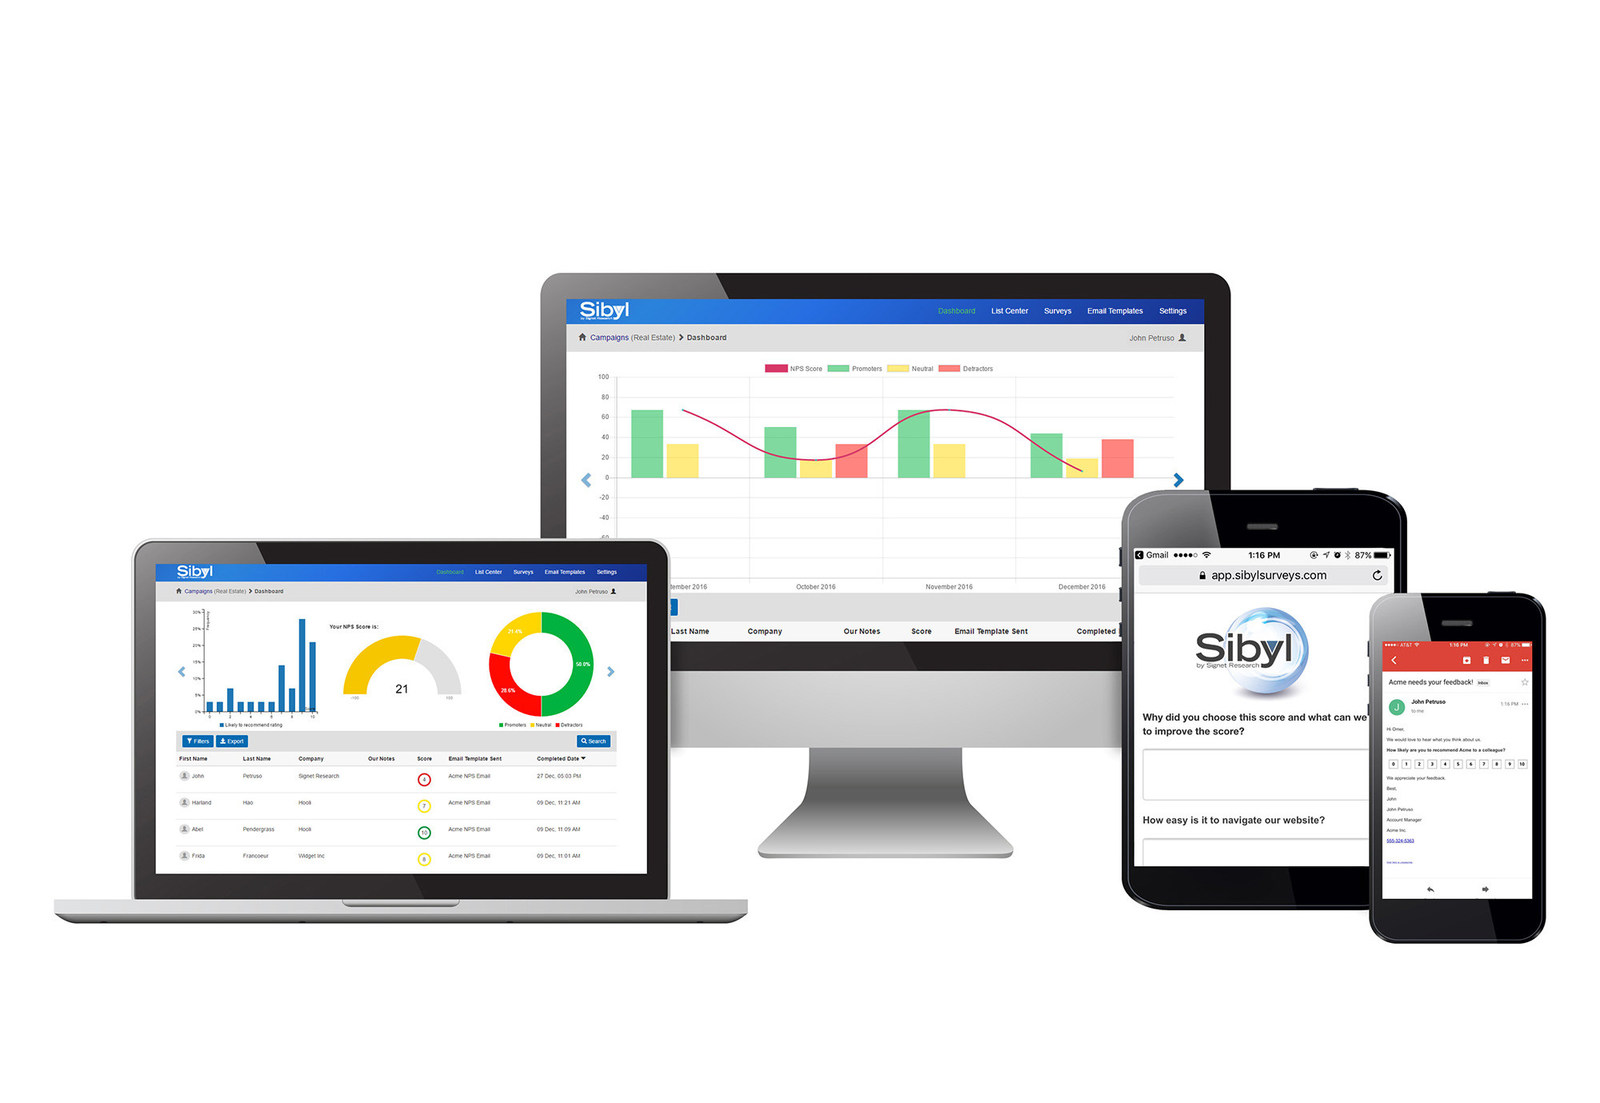 Signet Research Releases Sibyl Pulse: A Customer Experience Management Platform